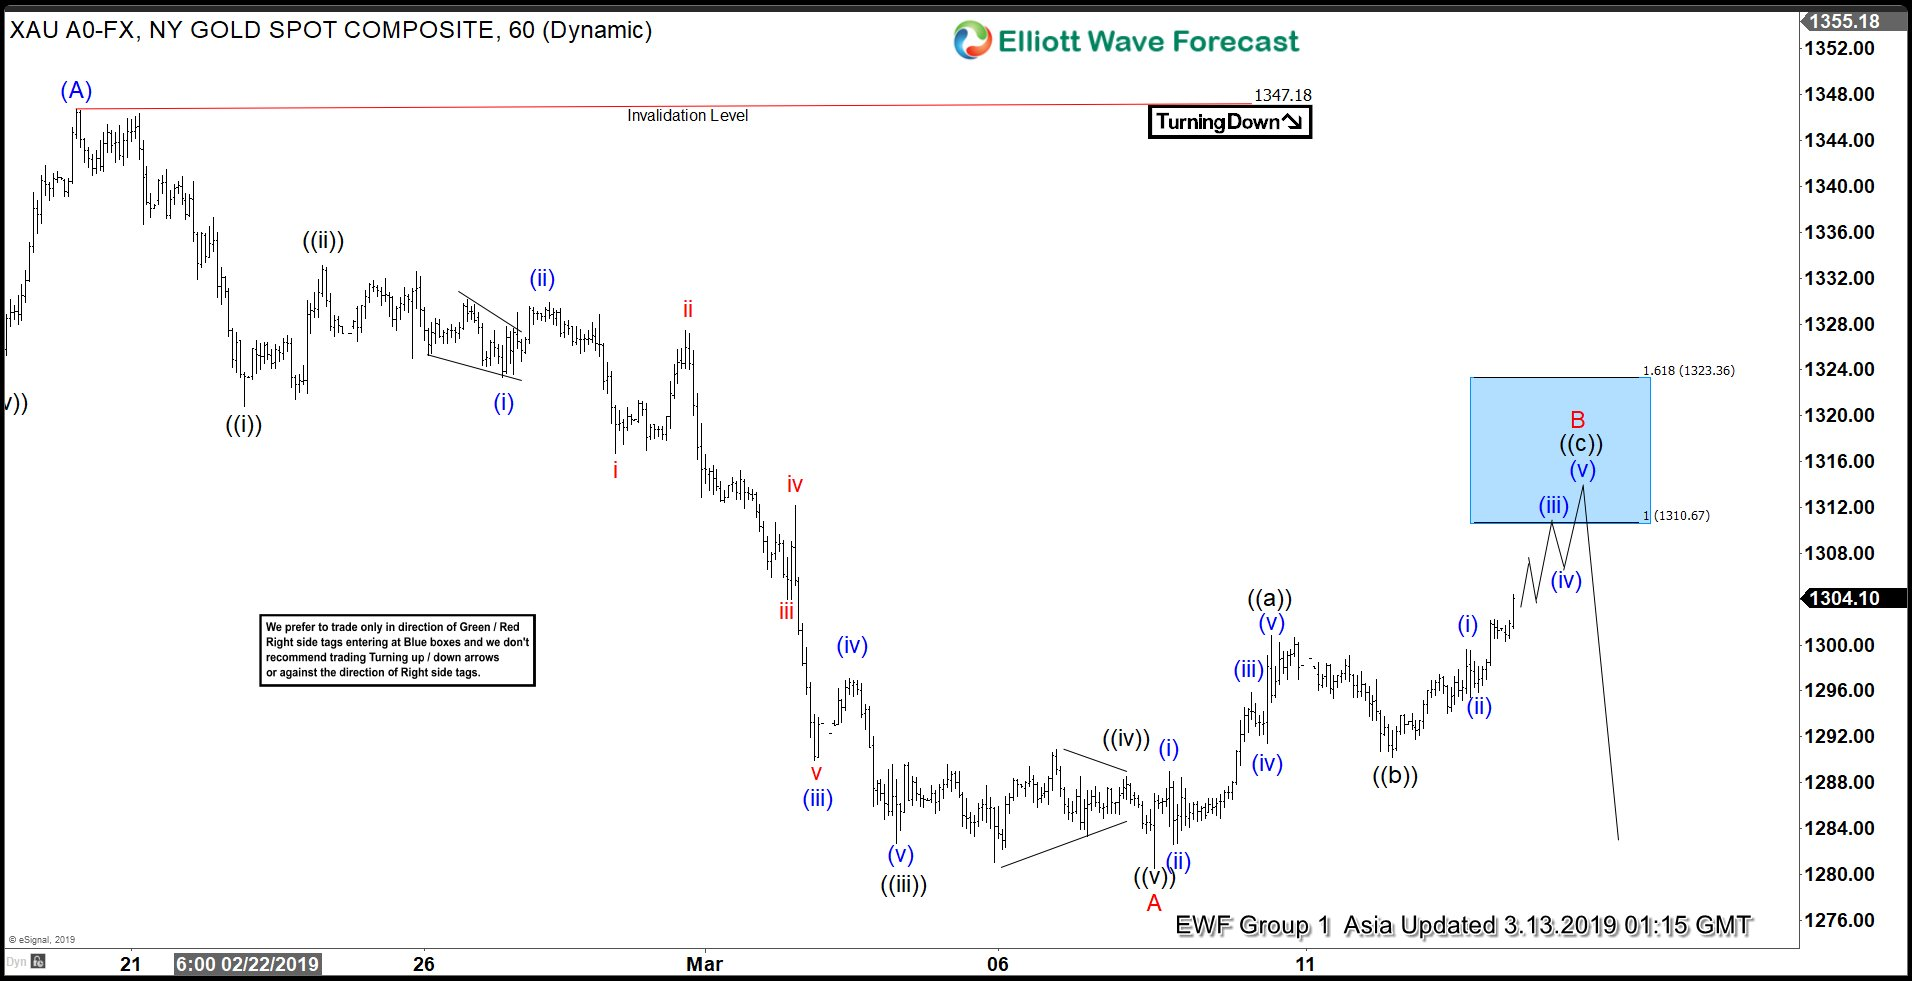 Elliott Wave View: Gold Can See Profit Taking